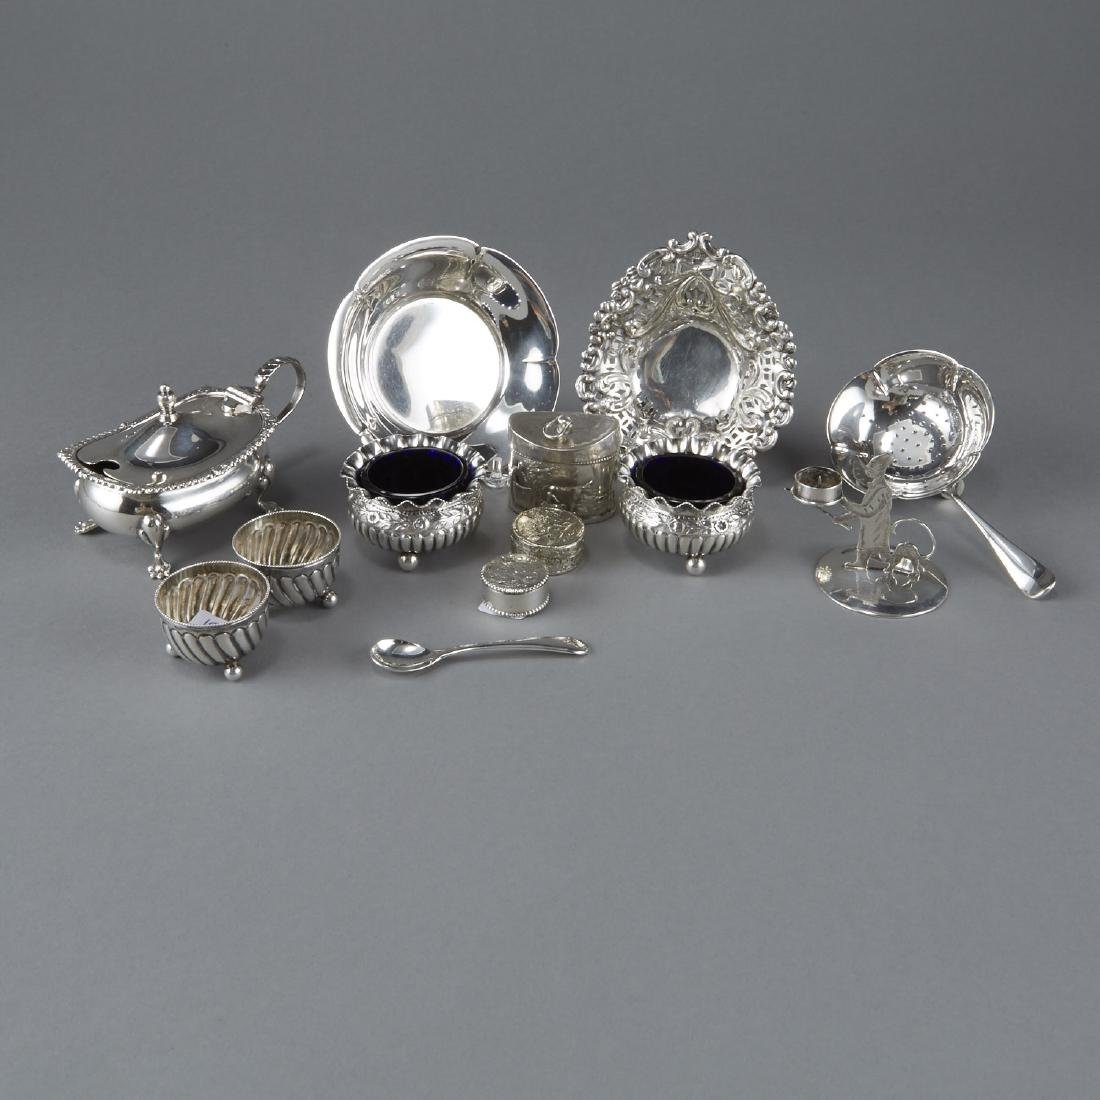 13 Miniature Sterling Silver Serving Dishes